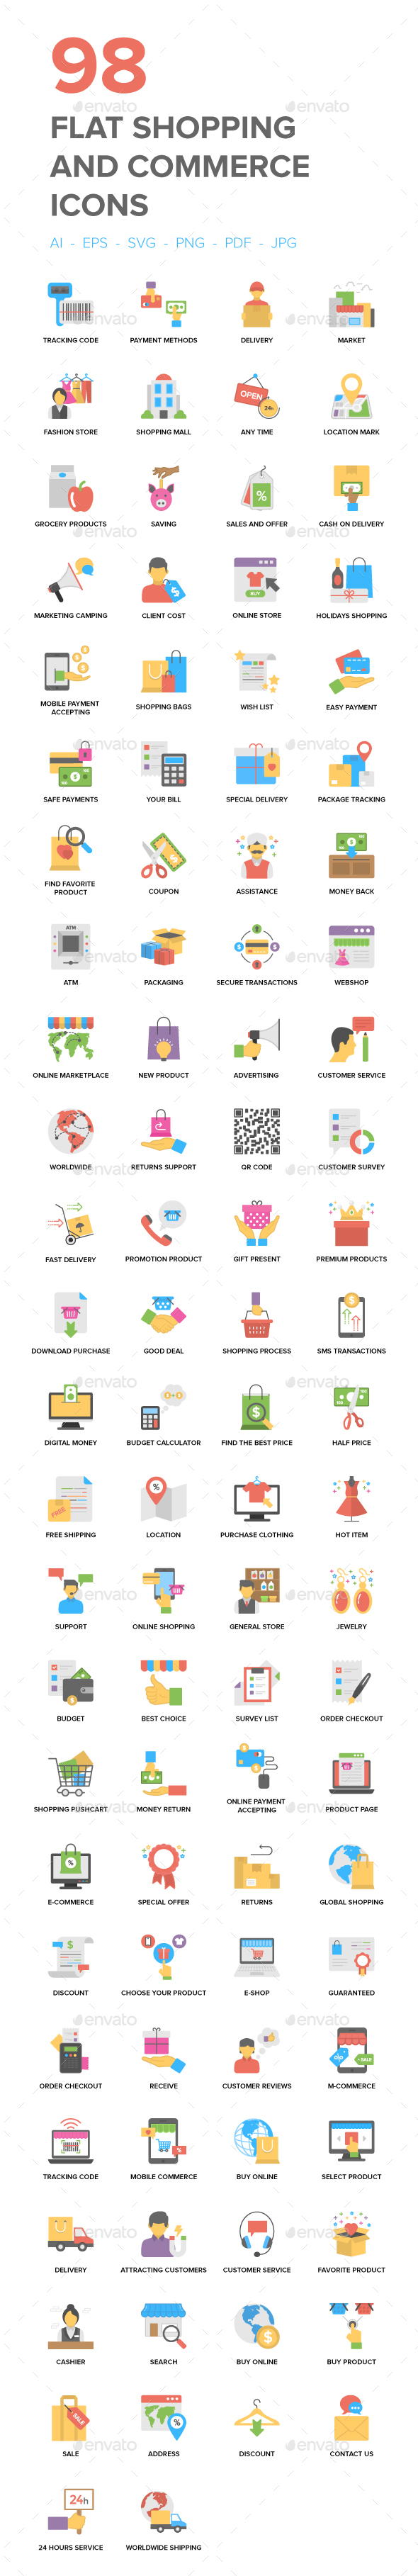 Flat Shopping and Commerce Icons - Icons